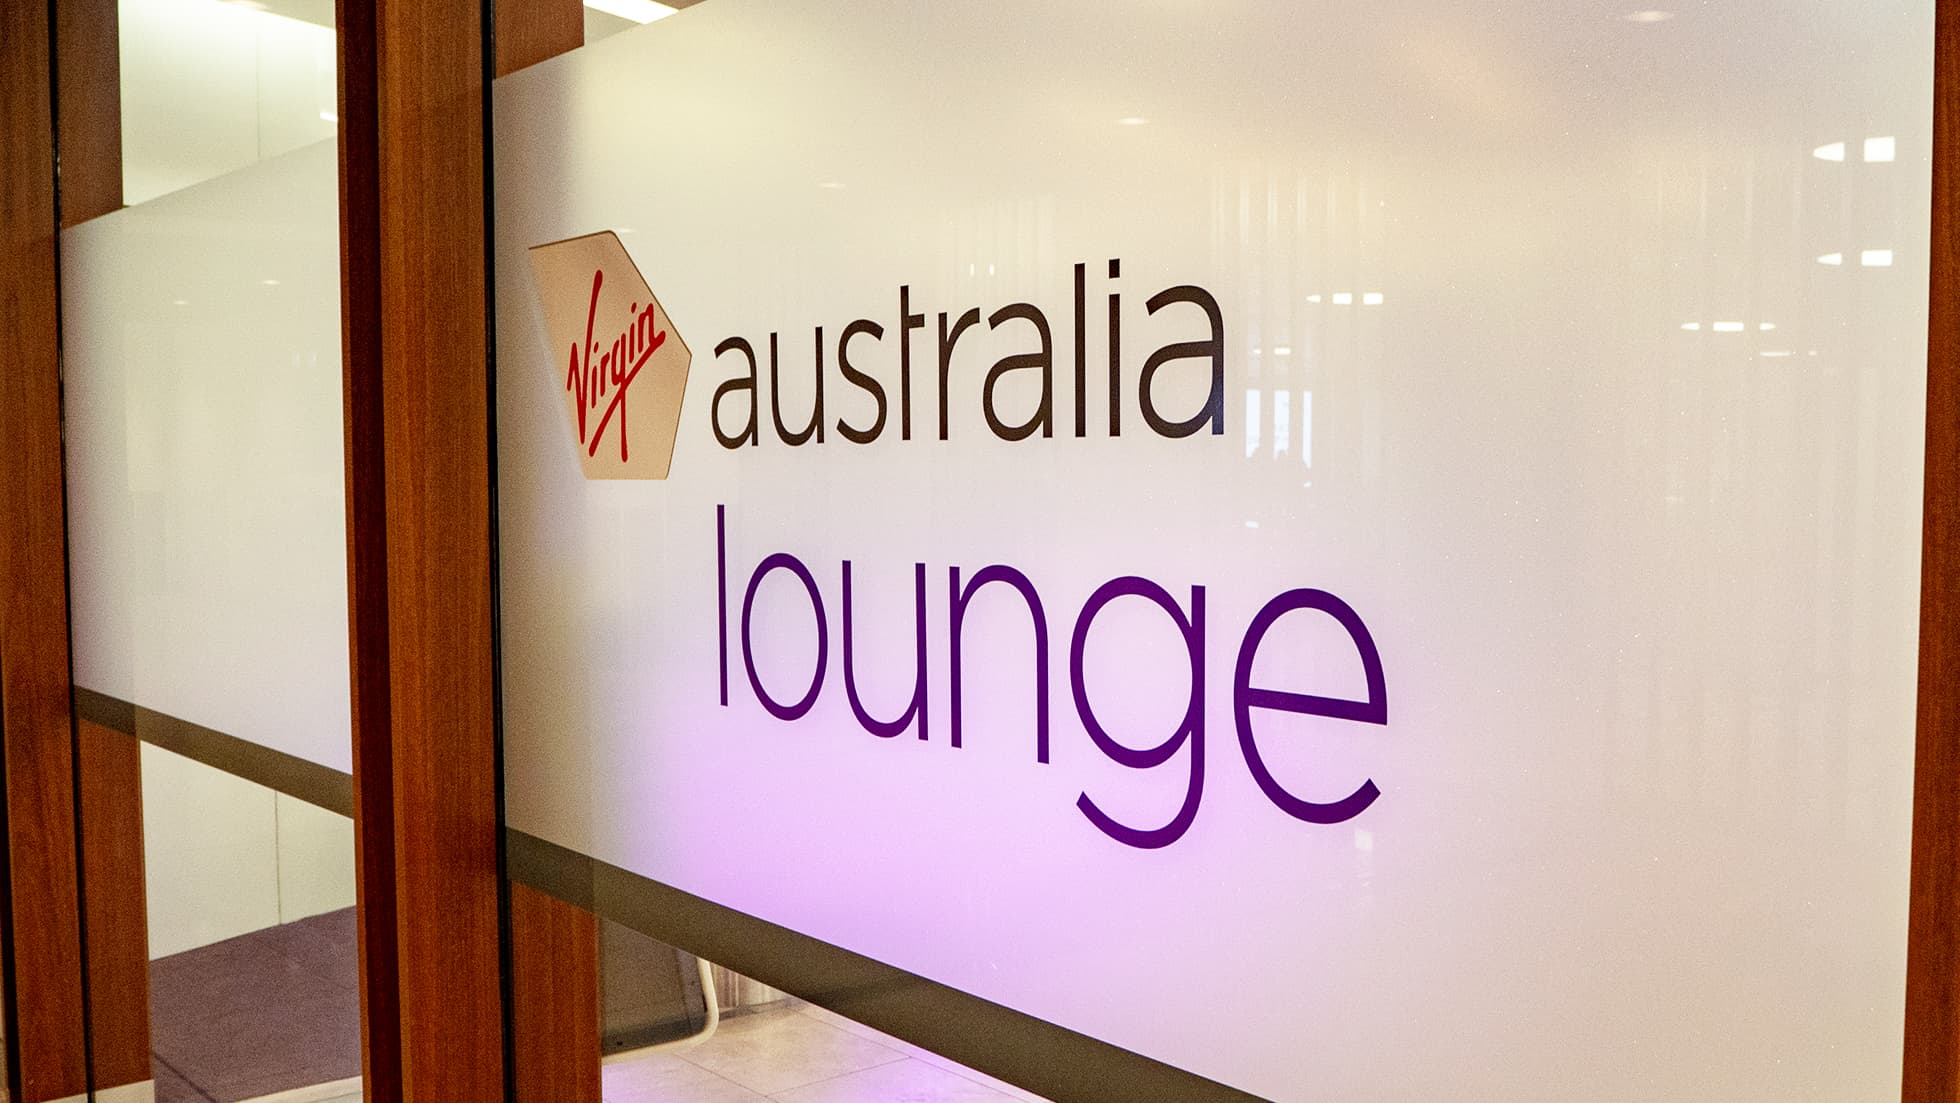 Virgin Australia Perth Lounge Review 2020